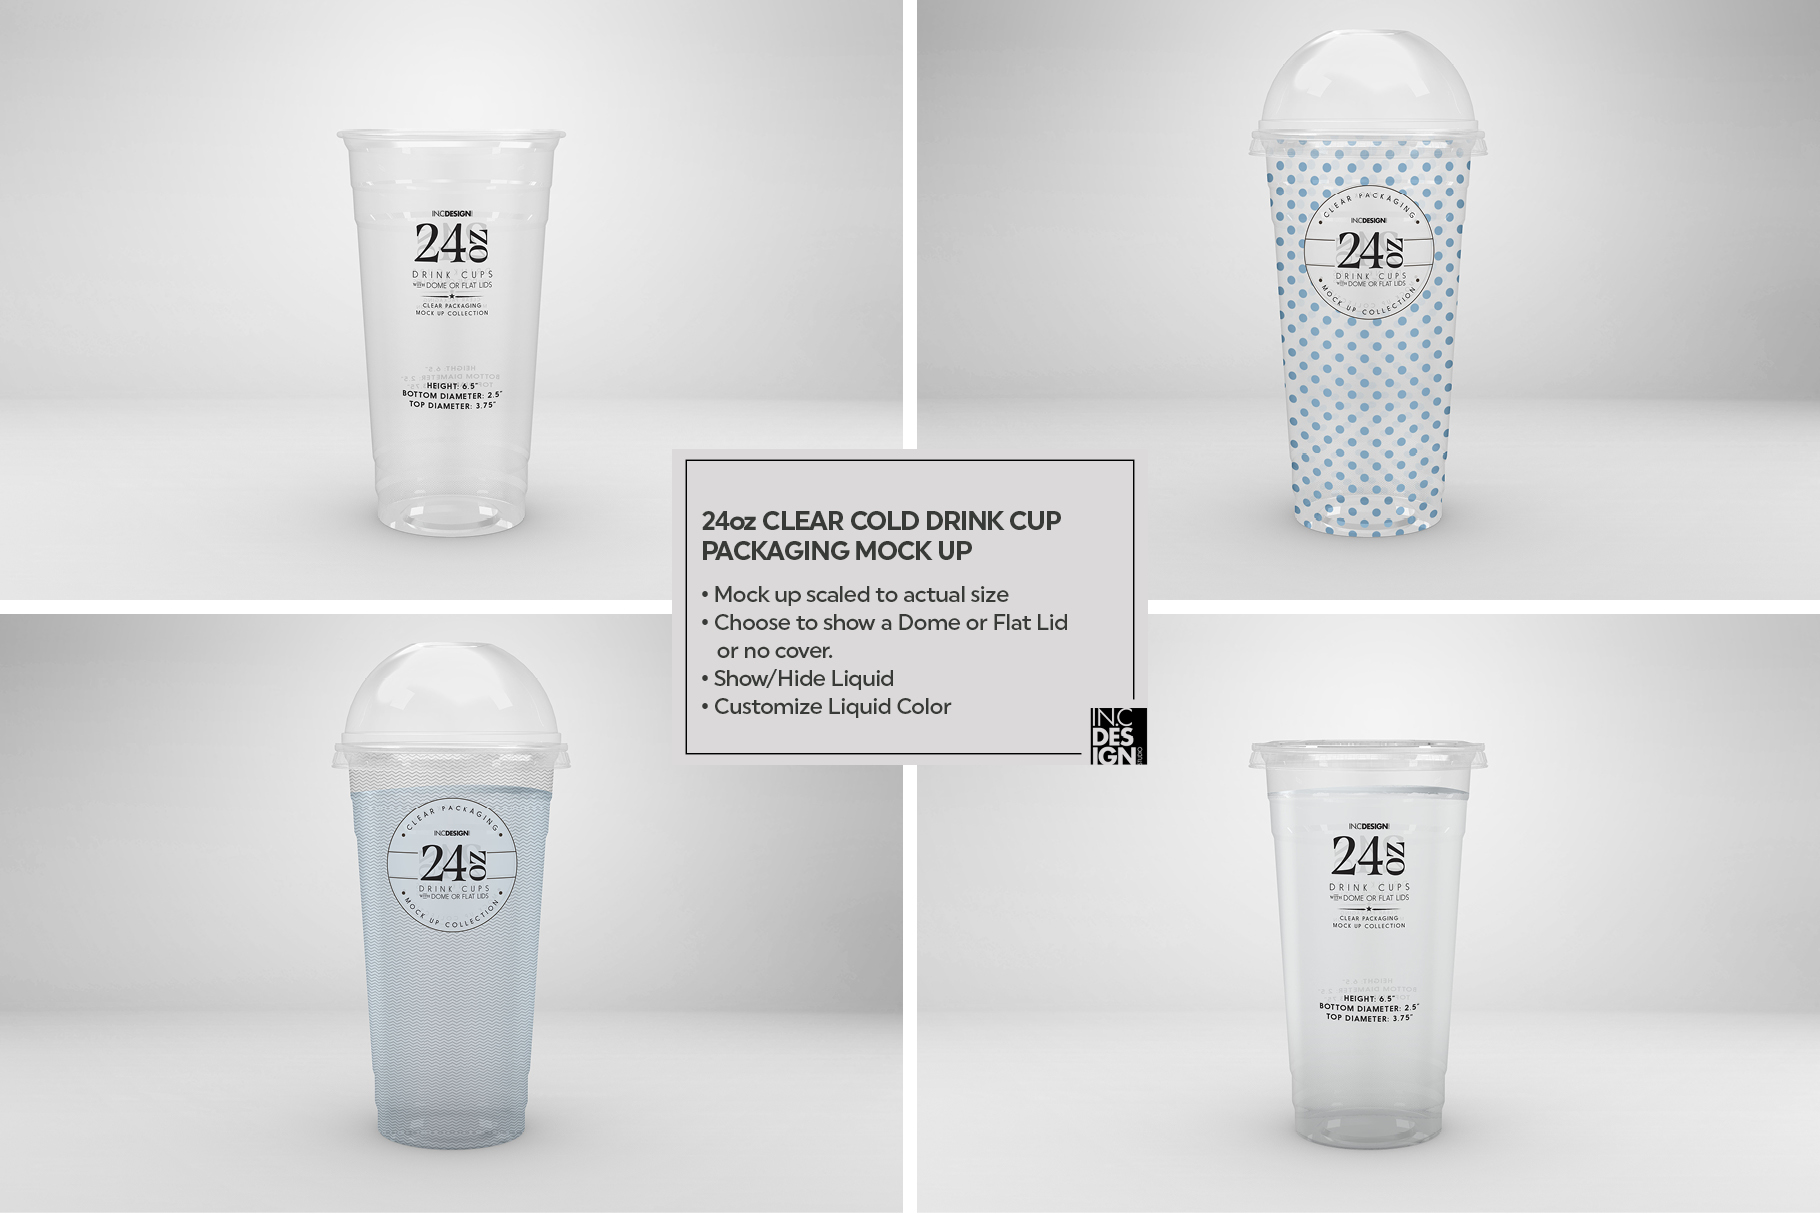 Clear Cold Drink Cups Packaging Mockup example image 19